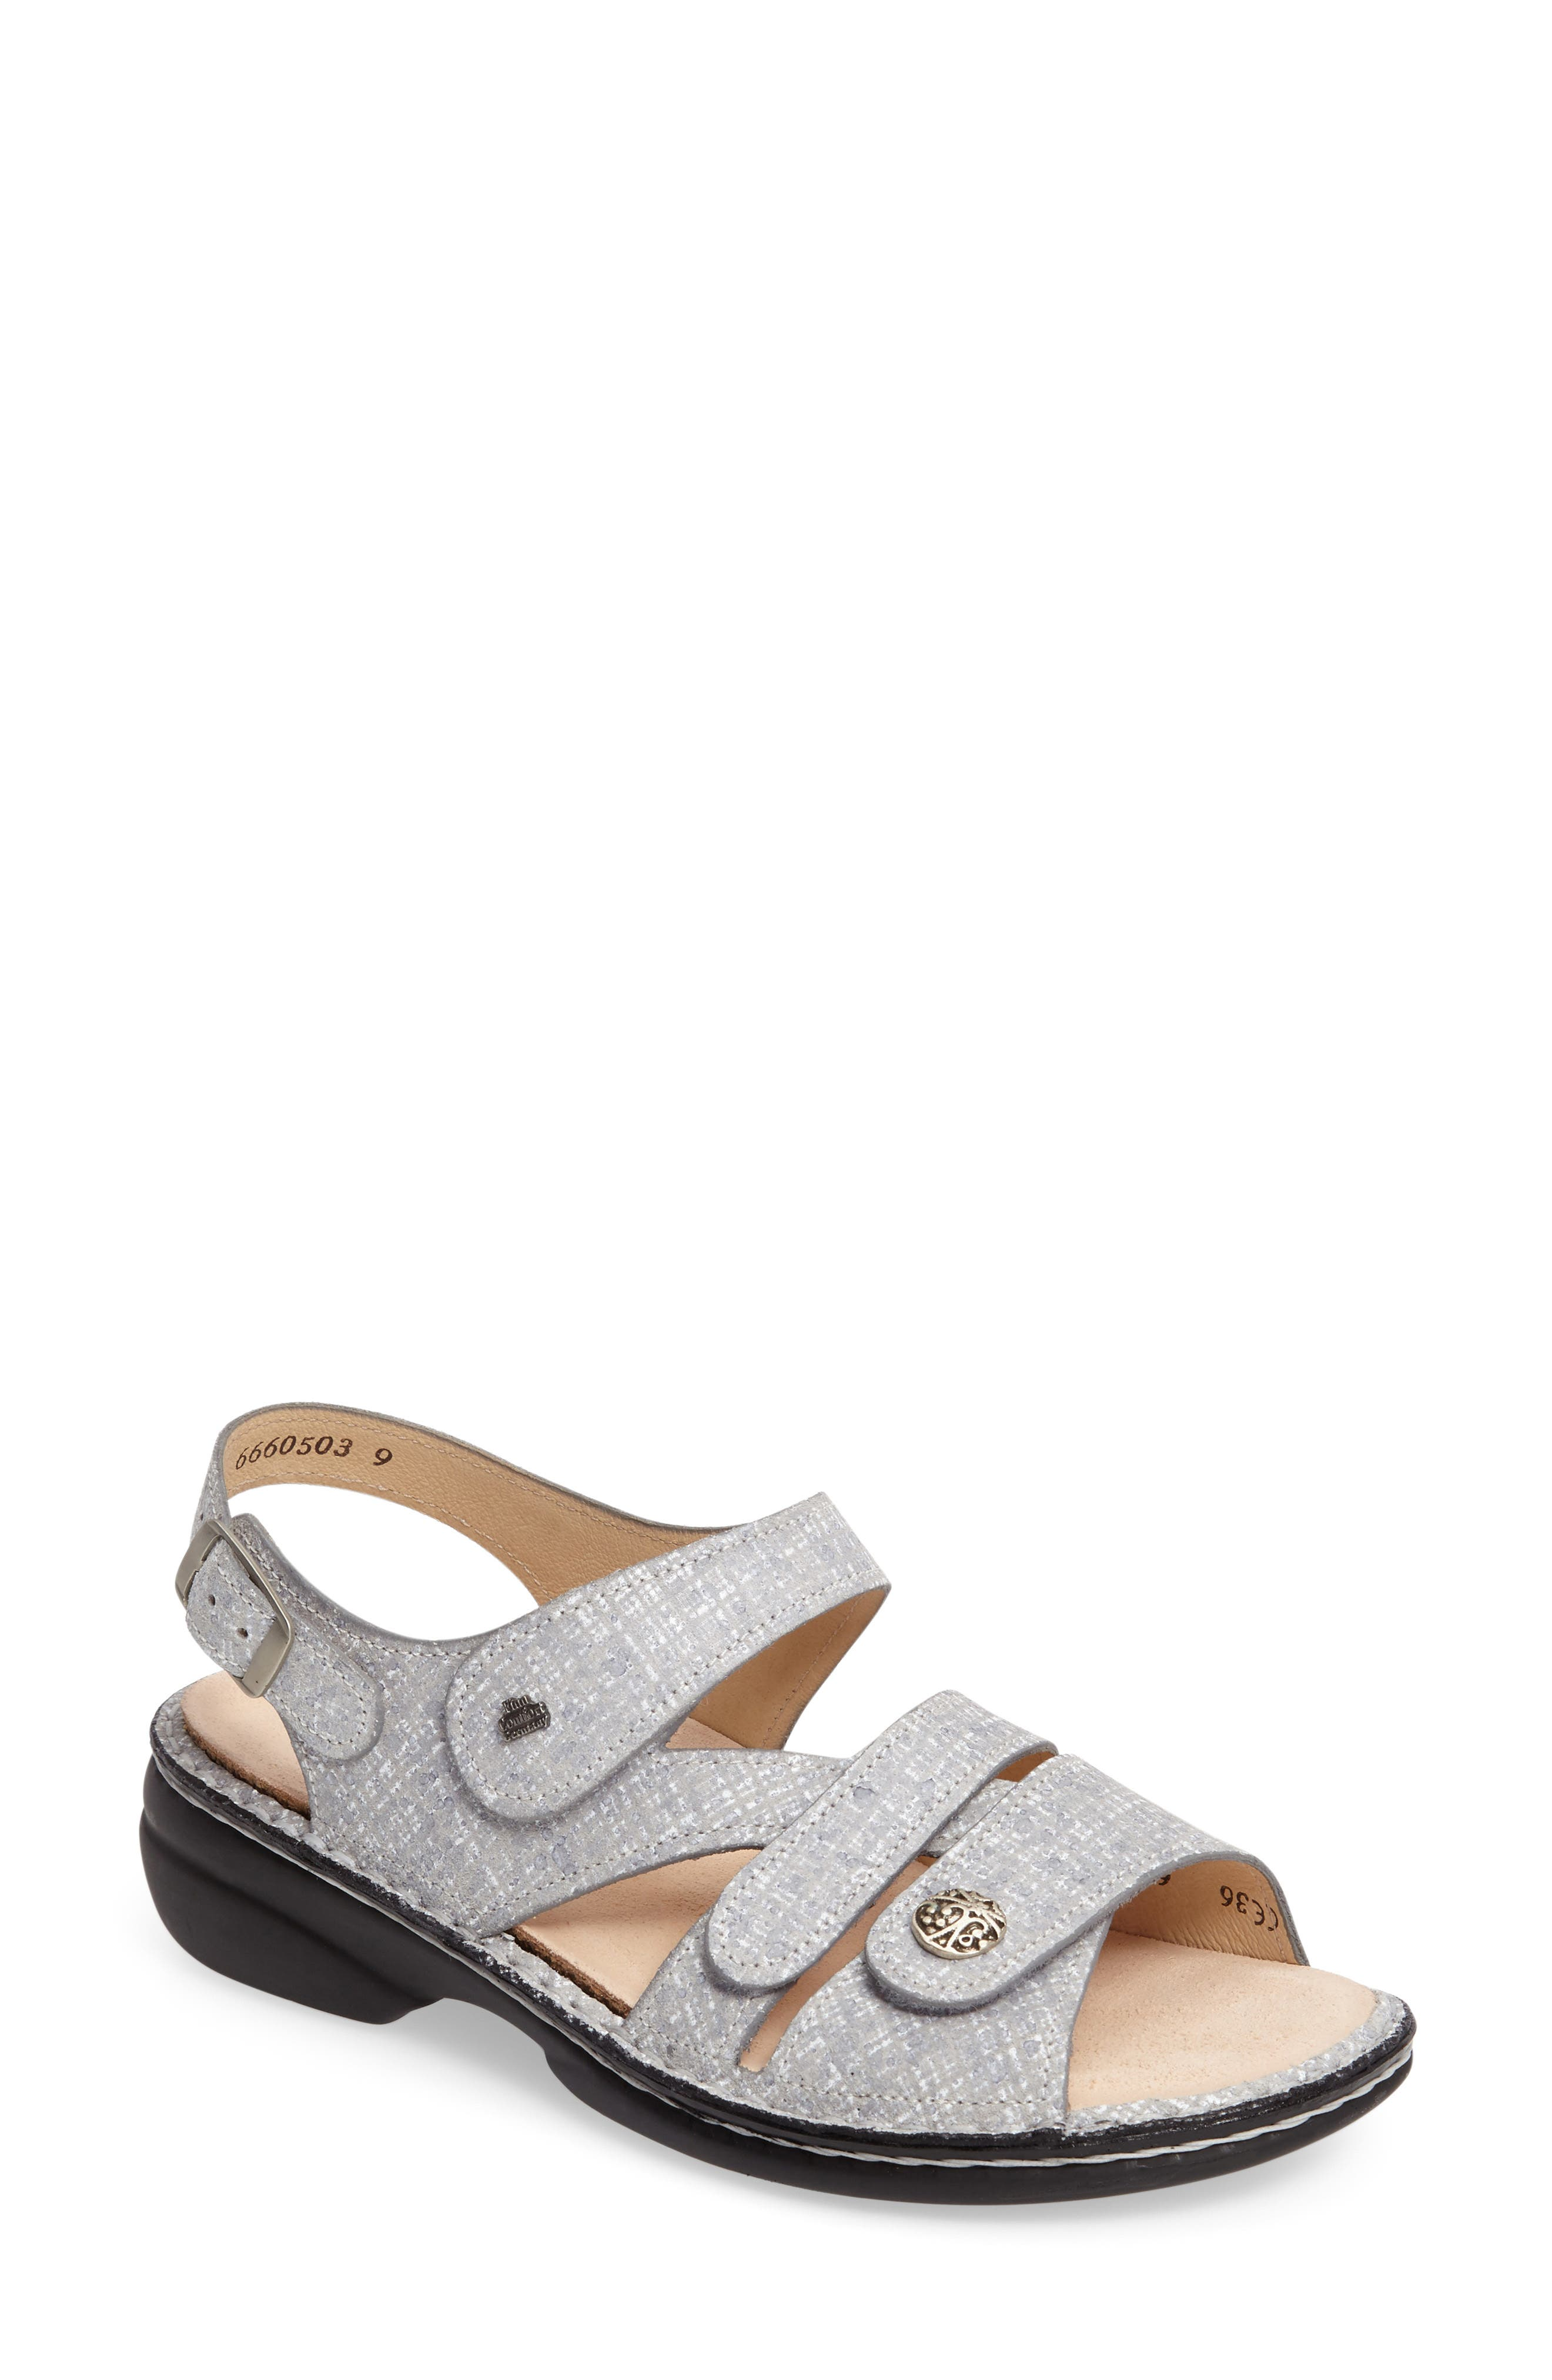 Alternate Image 1 Selected - Finn Comfort 'Gomera' Sandal